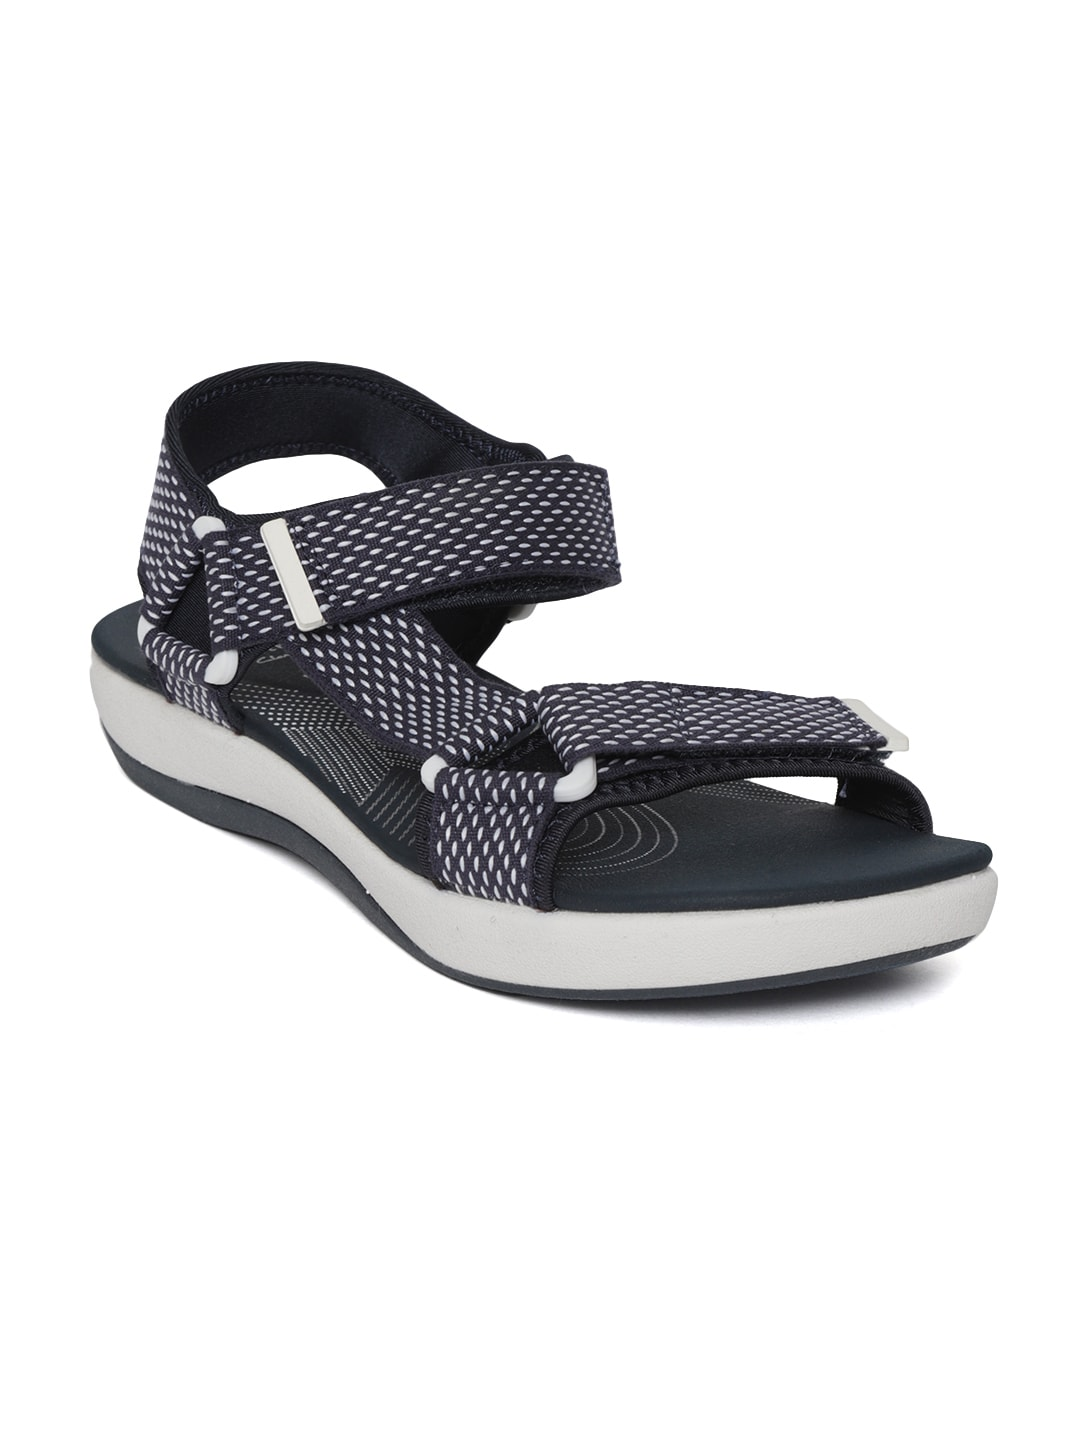 a97004818bce Clarks Arla Marina Navy Blue Sandals for women - Get stylish shoes ...